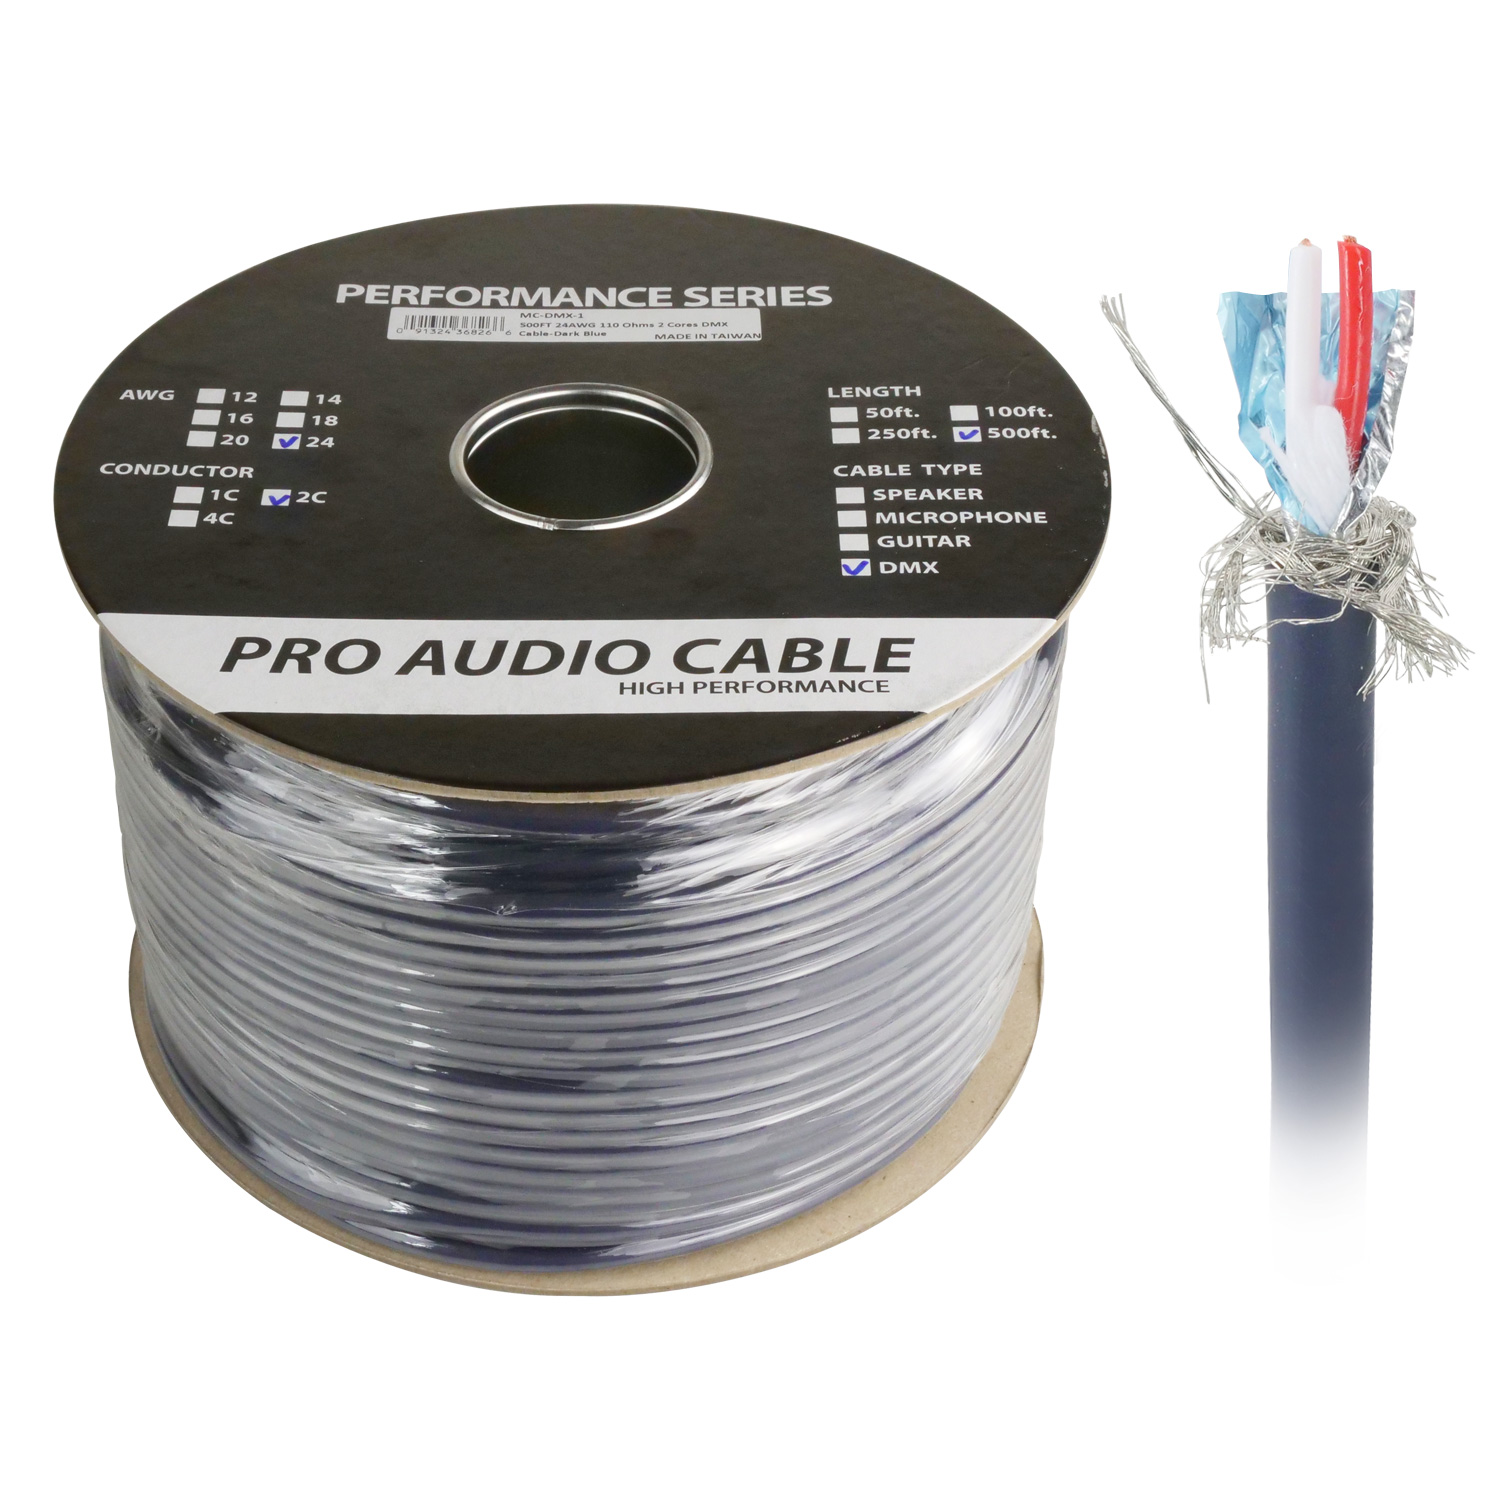 500ft One Pair DMX Digital Lighting Control Cable, Braid Shielding